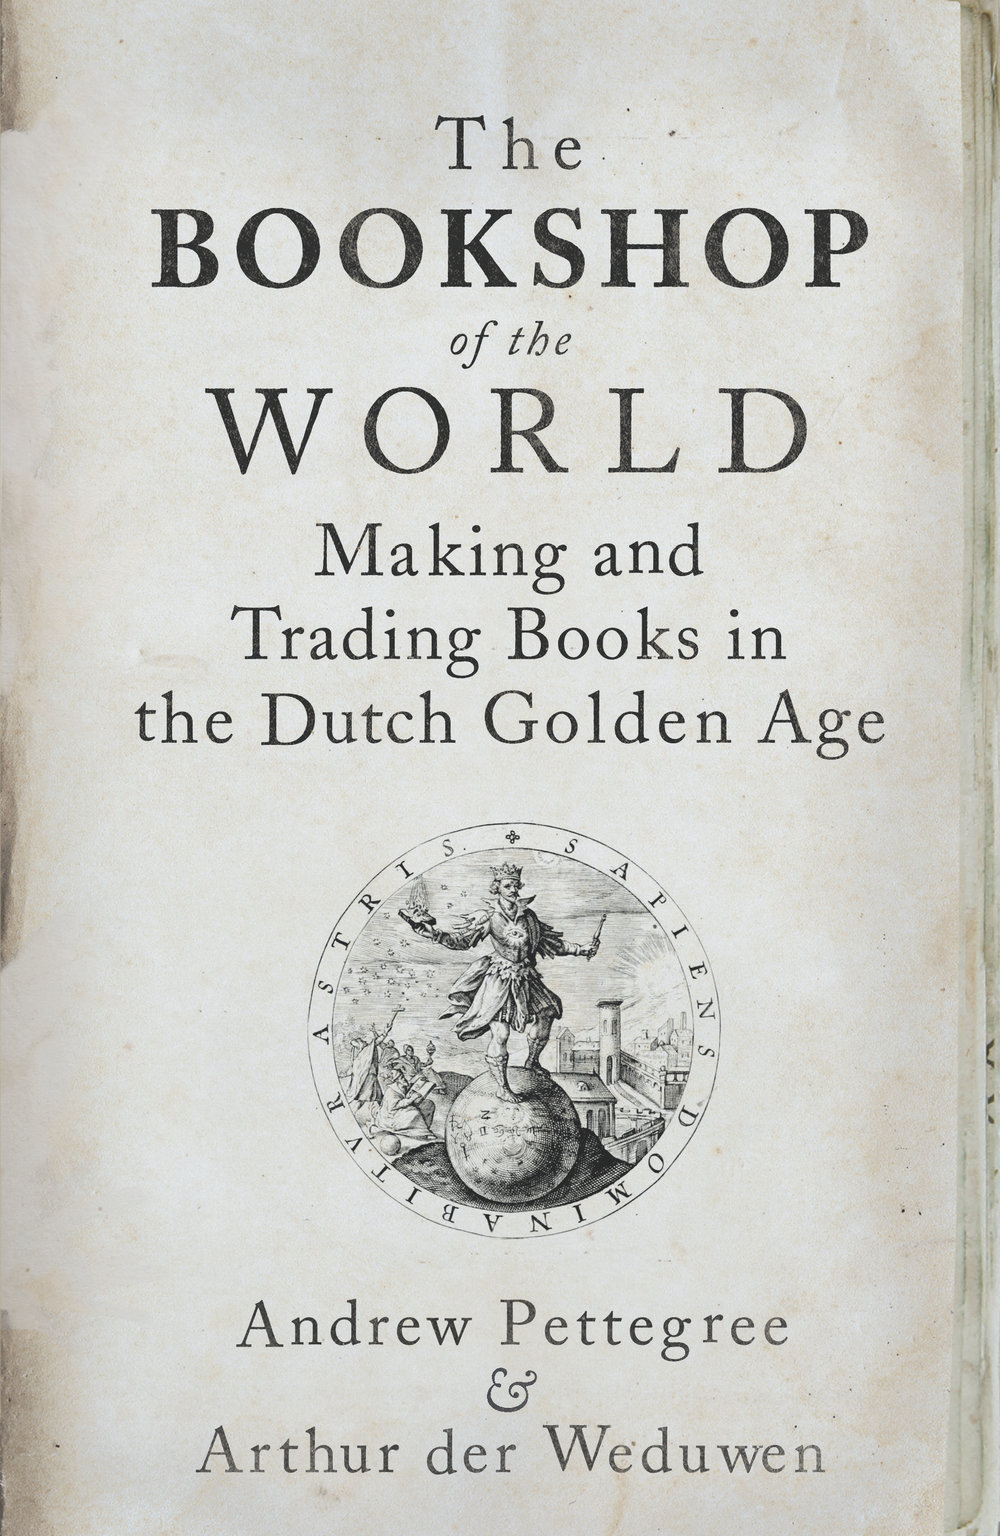 The bookshop of the world - Published in February 2019. Order here.The Bookshop of the World. Making and Trading Books in the Dutch Golden Age (London/New Haven: Yale University Press, 2019), co-written with Andrew Pettegree.In the seventeenth century, the Dutch took fame by storm: a new country, a new way of governing, a new culture. The untold part of this story is the Dutch conquest of the European book world. This was the age of Rembrandt and Vermeer, and Dutch art has always held centre stage; but the Dutch published many more books than pictures, and bought and owned more books per capita than any other part of Europe. Key innovations in marketing, book auctions and newspaper advertising, brought stability to a market where elsewhere in Europe publishers faced bankruptcy: the Dutch made money from books, and created a population uniquely well-informed and politically engaged. This pious, prosperous, quarrelsome and generous people were to a large extent shaped by their books. The story of how this book world came to be is the unacknowledged marvel of the Dutch Golden Age.